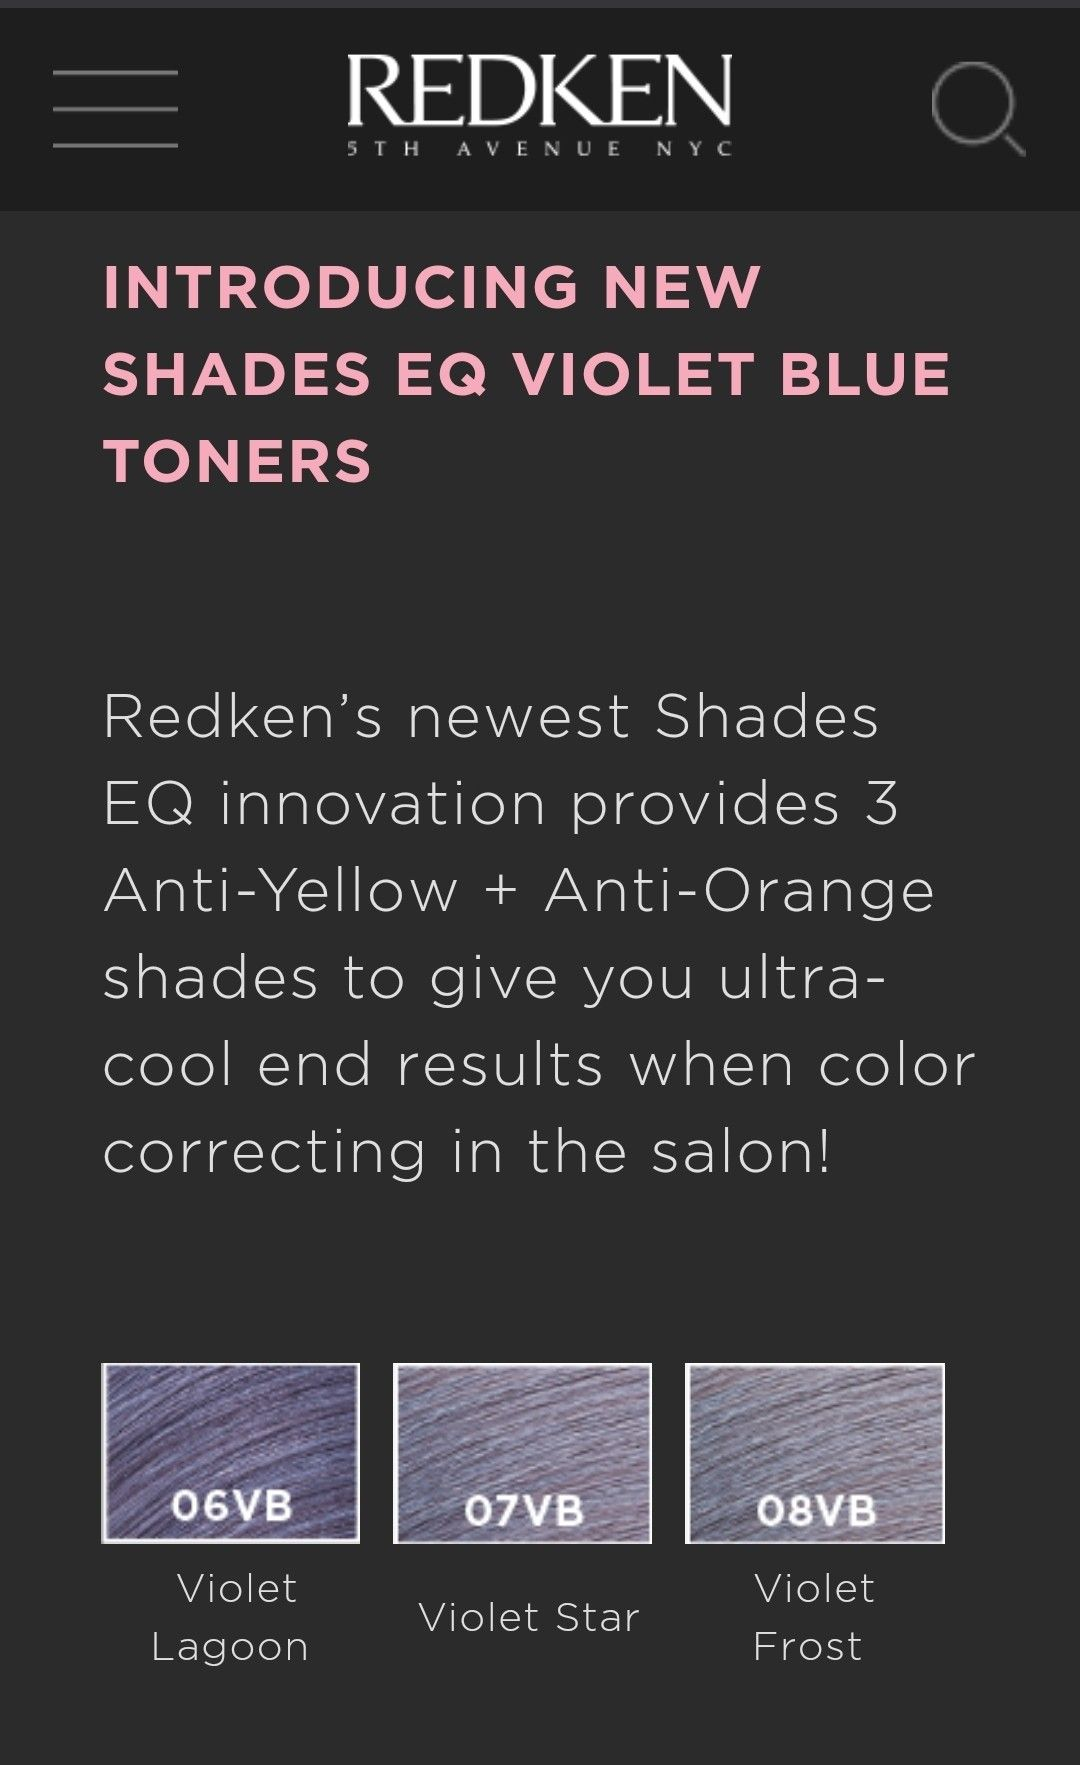 Pin By Lori Dalrymple On Hair In 2020 With Images Redken Toners Color Correction